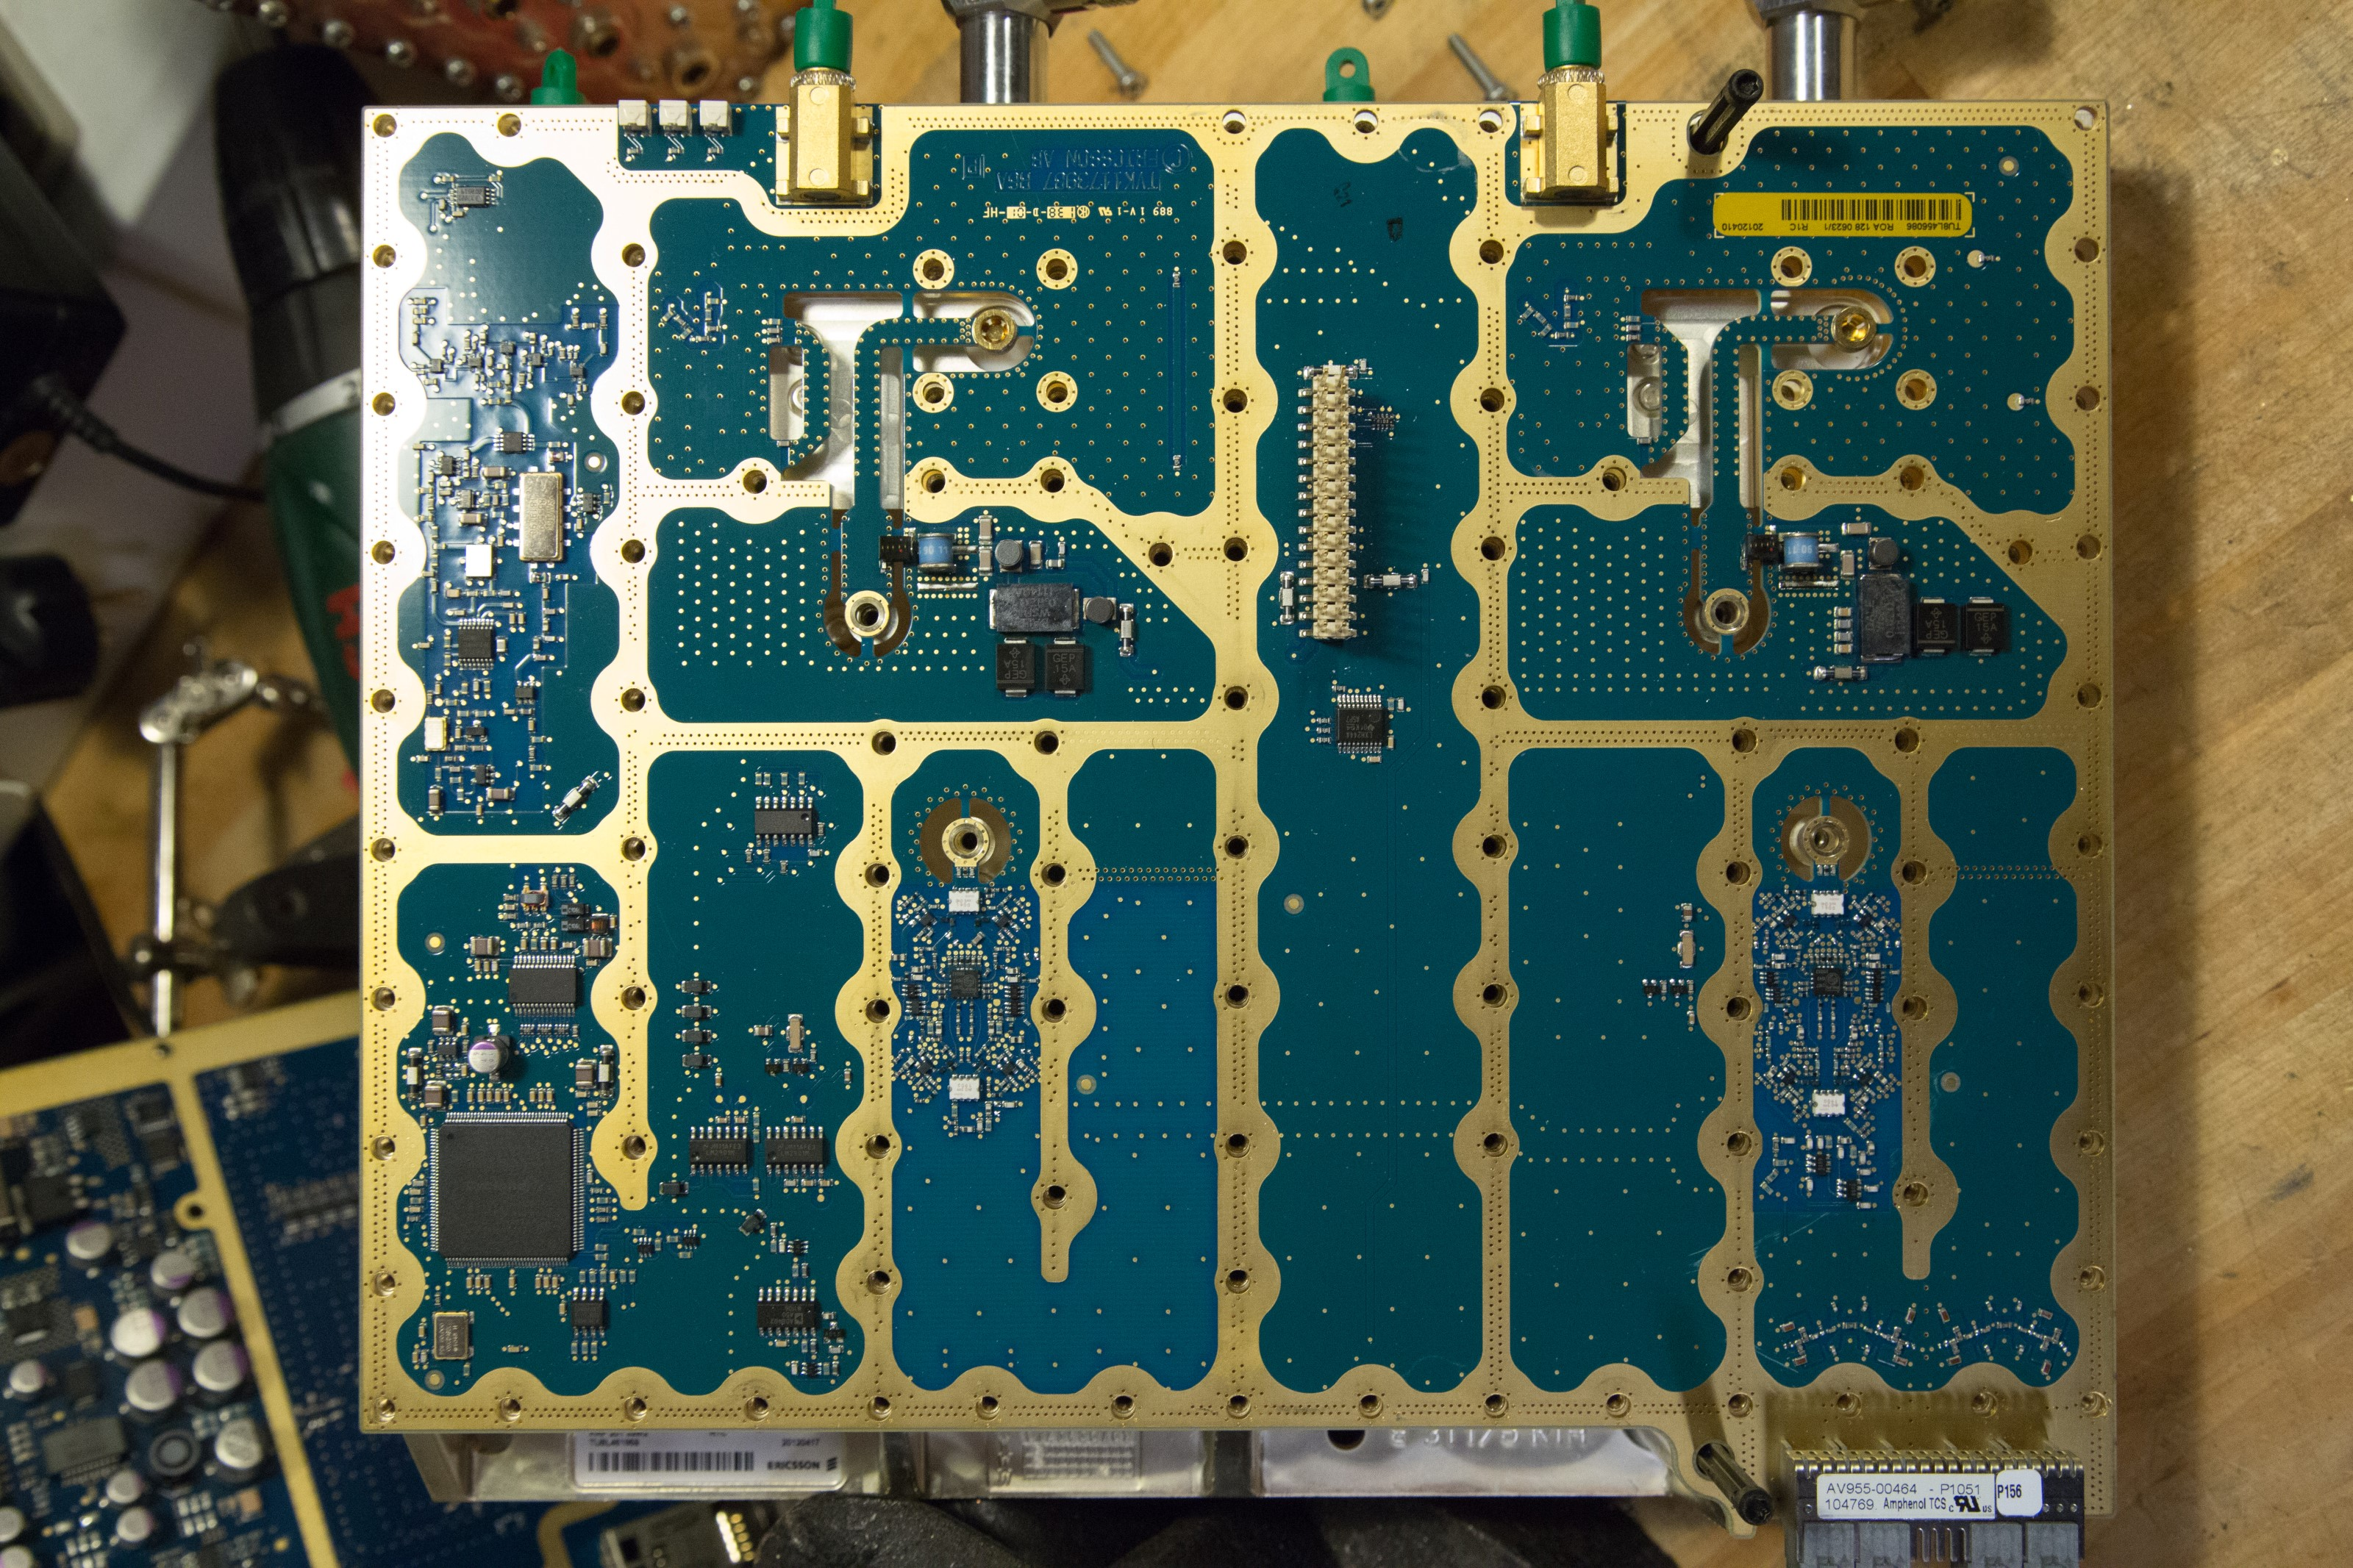 Kaizer Power Electronics High Voltage Enthusiasm Page 5 Master Slave Switch Eeweb Community That Board Also Have A First Generation Altera Cyclone Fpga Maybe Has To Do With The Connectors In Upper Right Corner Near All Pcb Cut Outs And